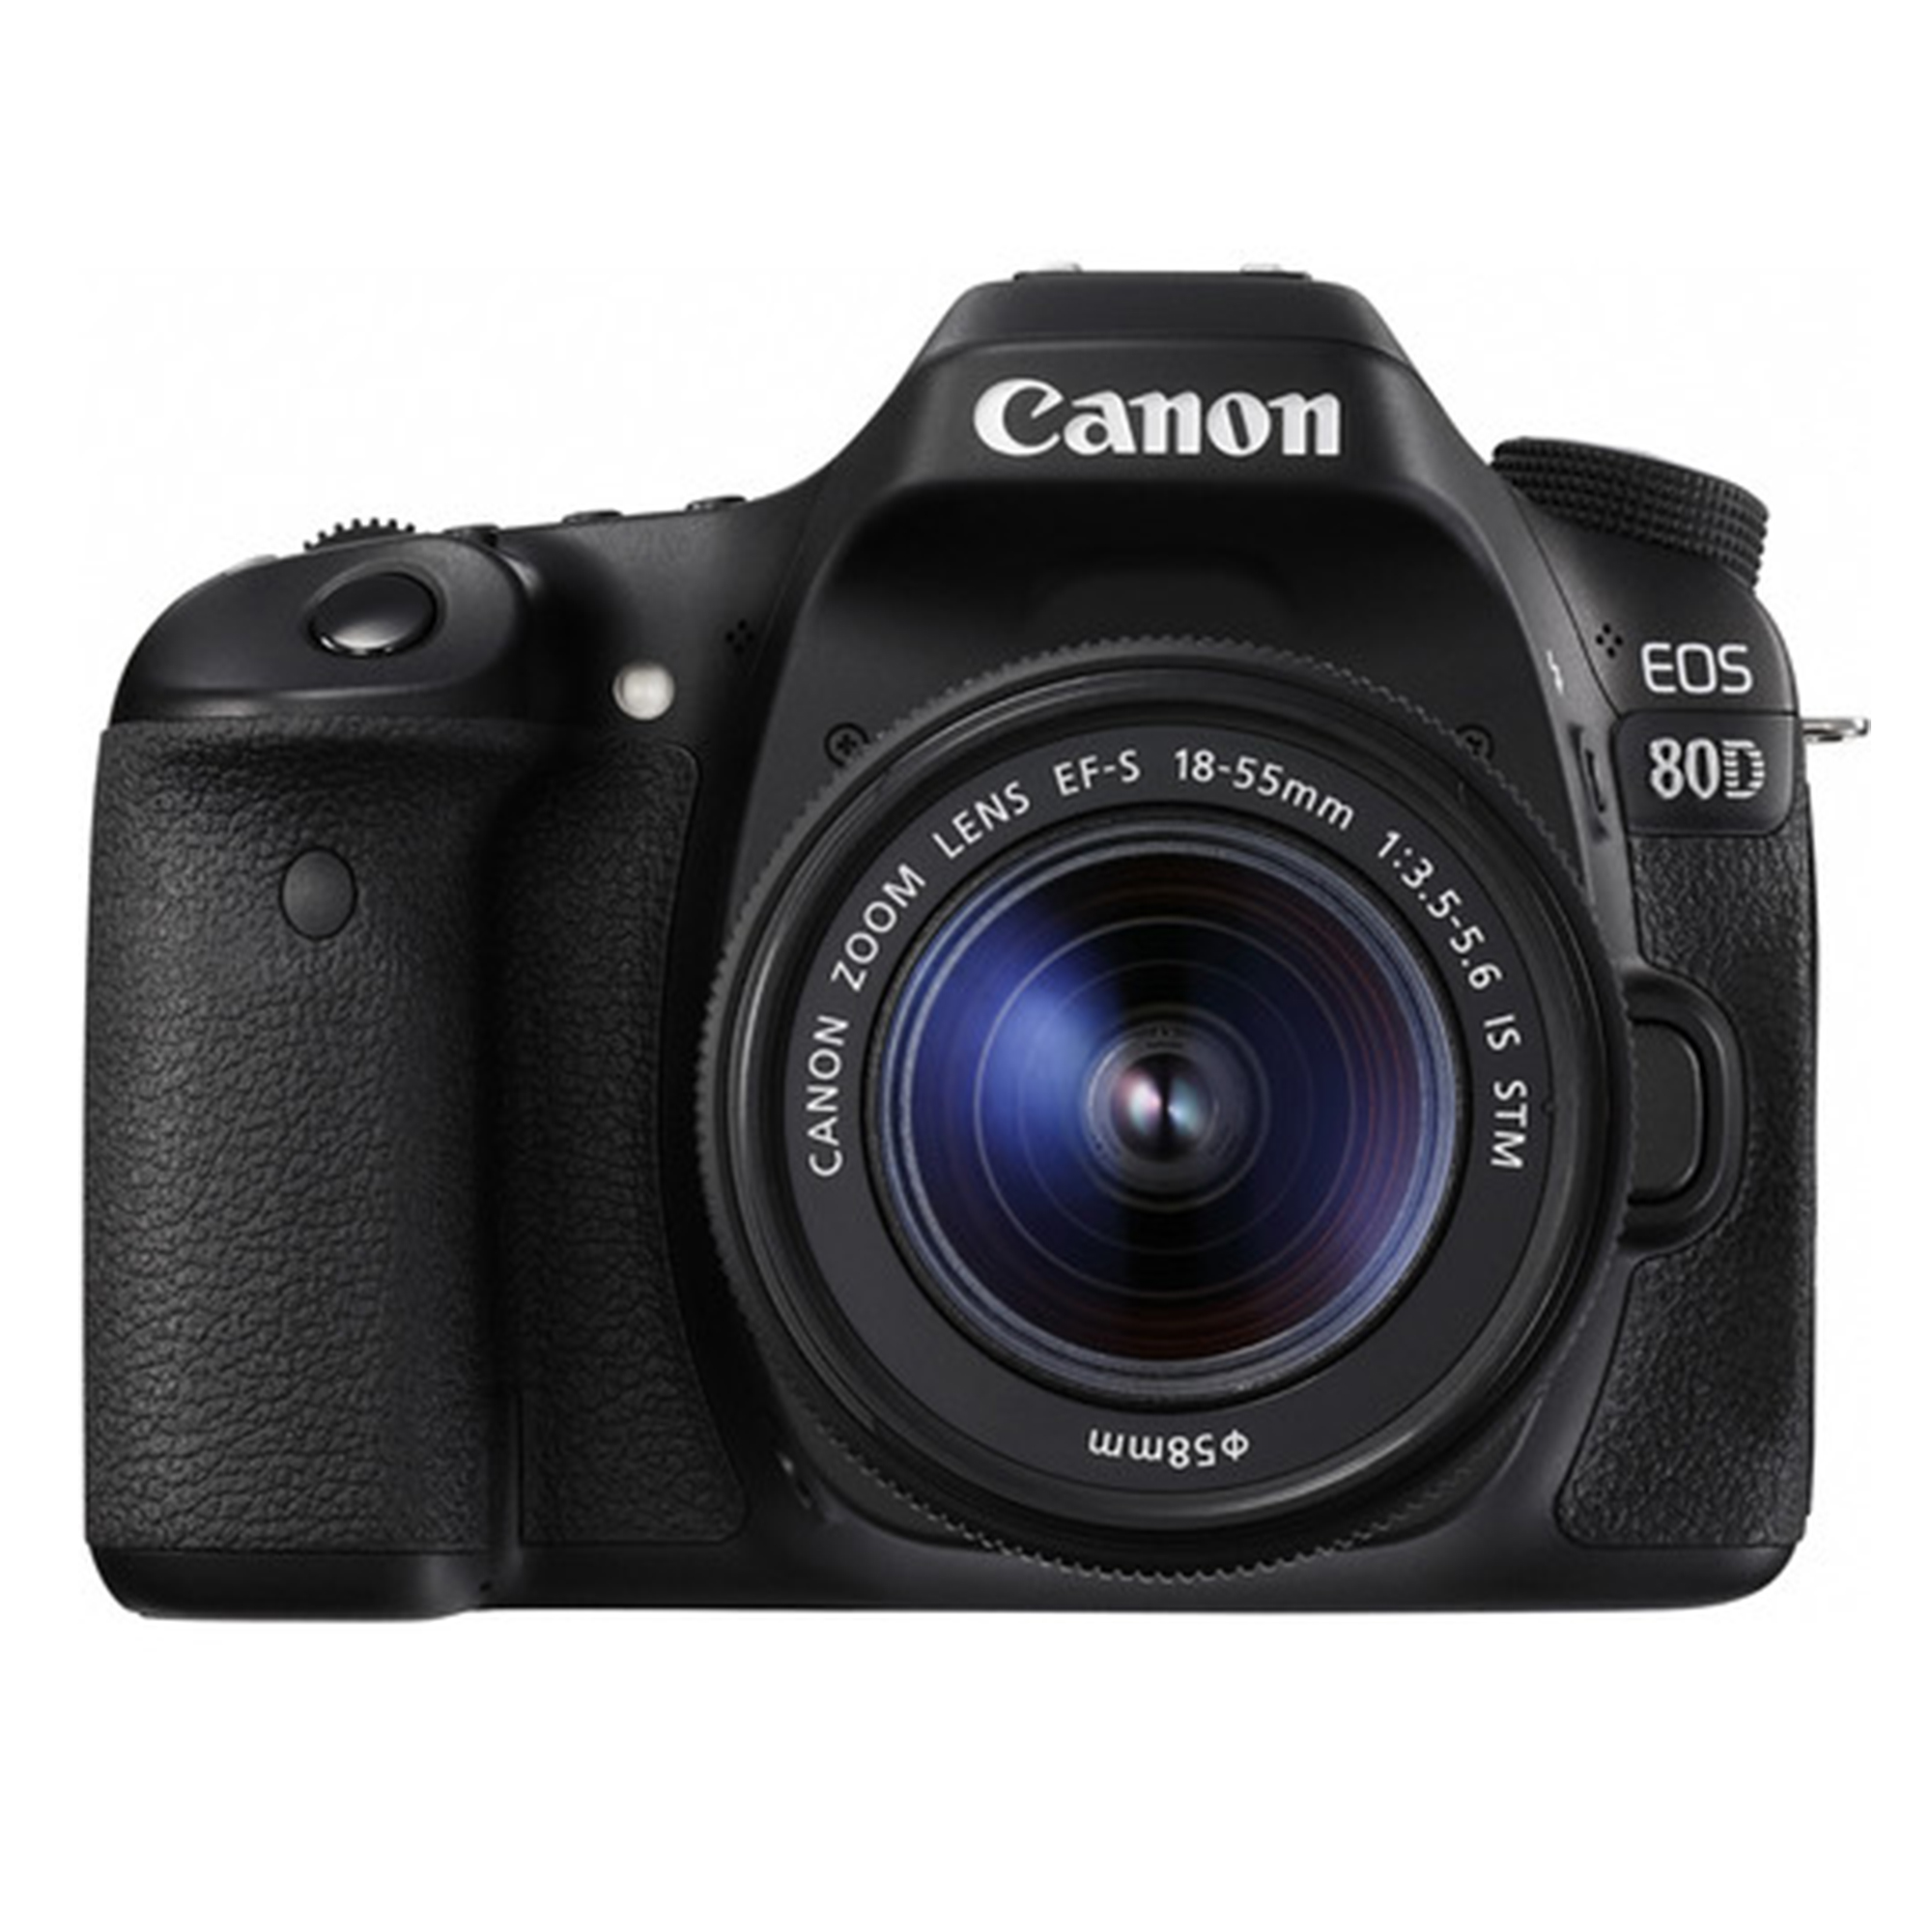 Canon EOS 80D DSLR Camera with 18-55 mm Lens + Free Gift Vanguard ALTA CA 203AP, 8GB Memory Card